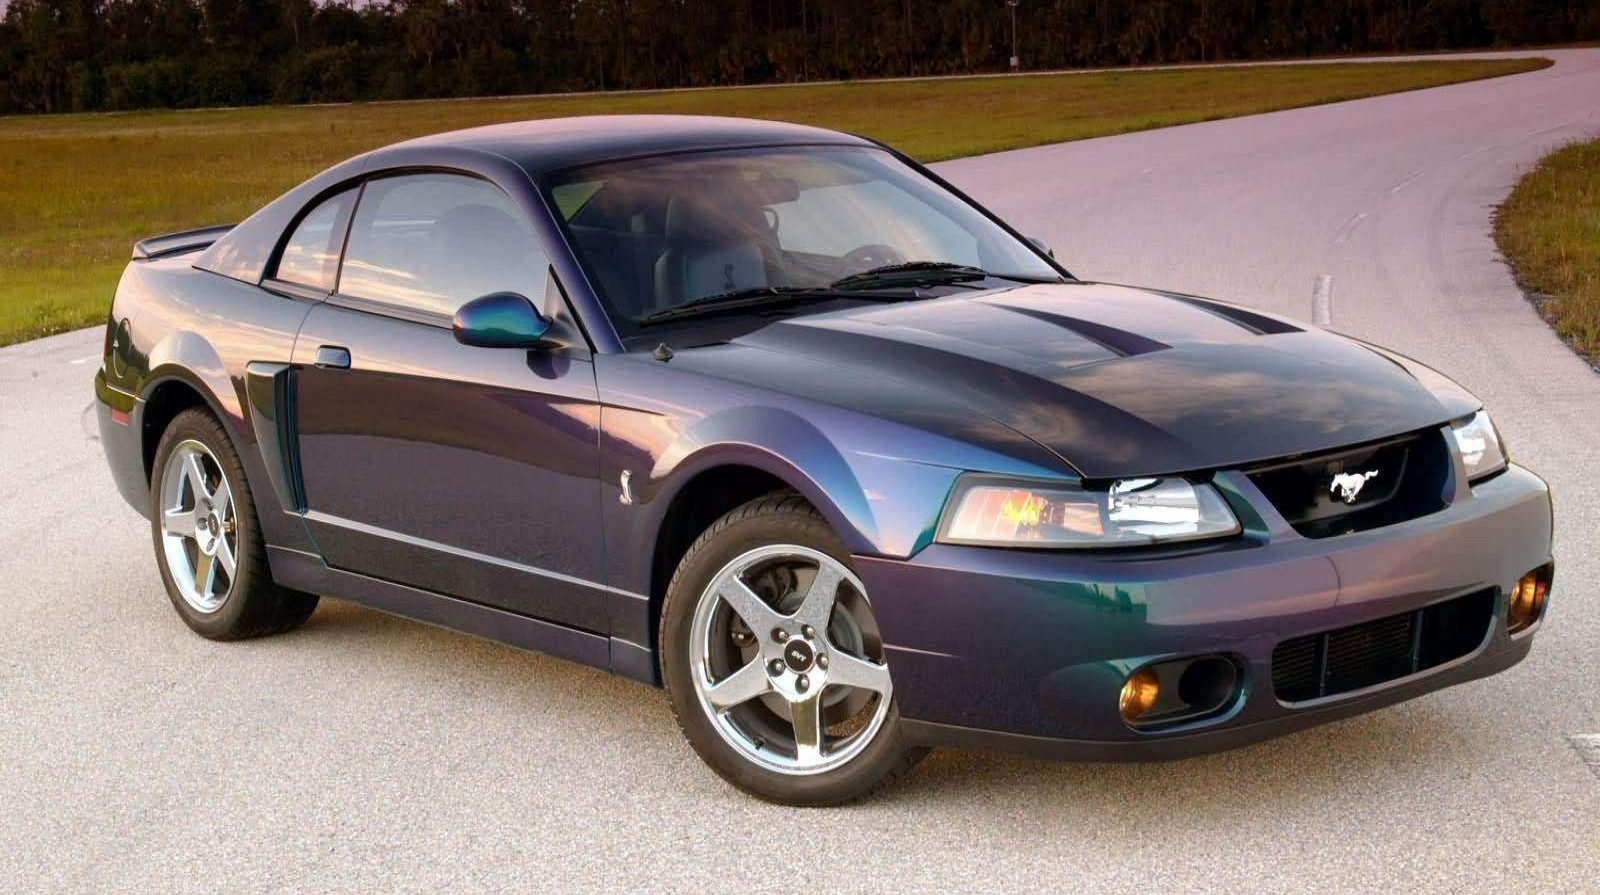 special editions - 2003 Ford Mustang Cobra Terminator